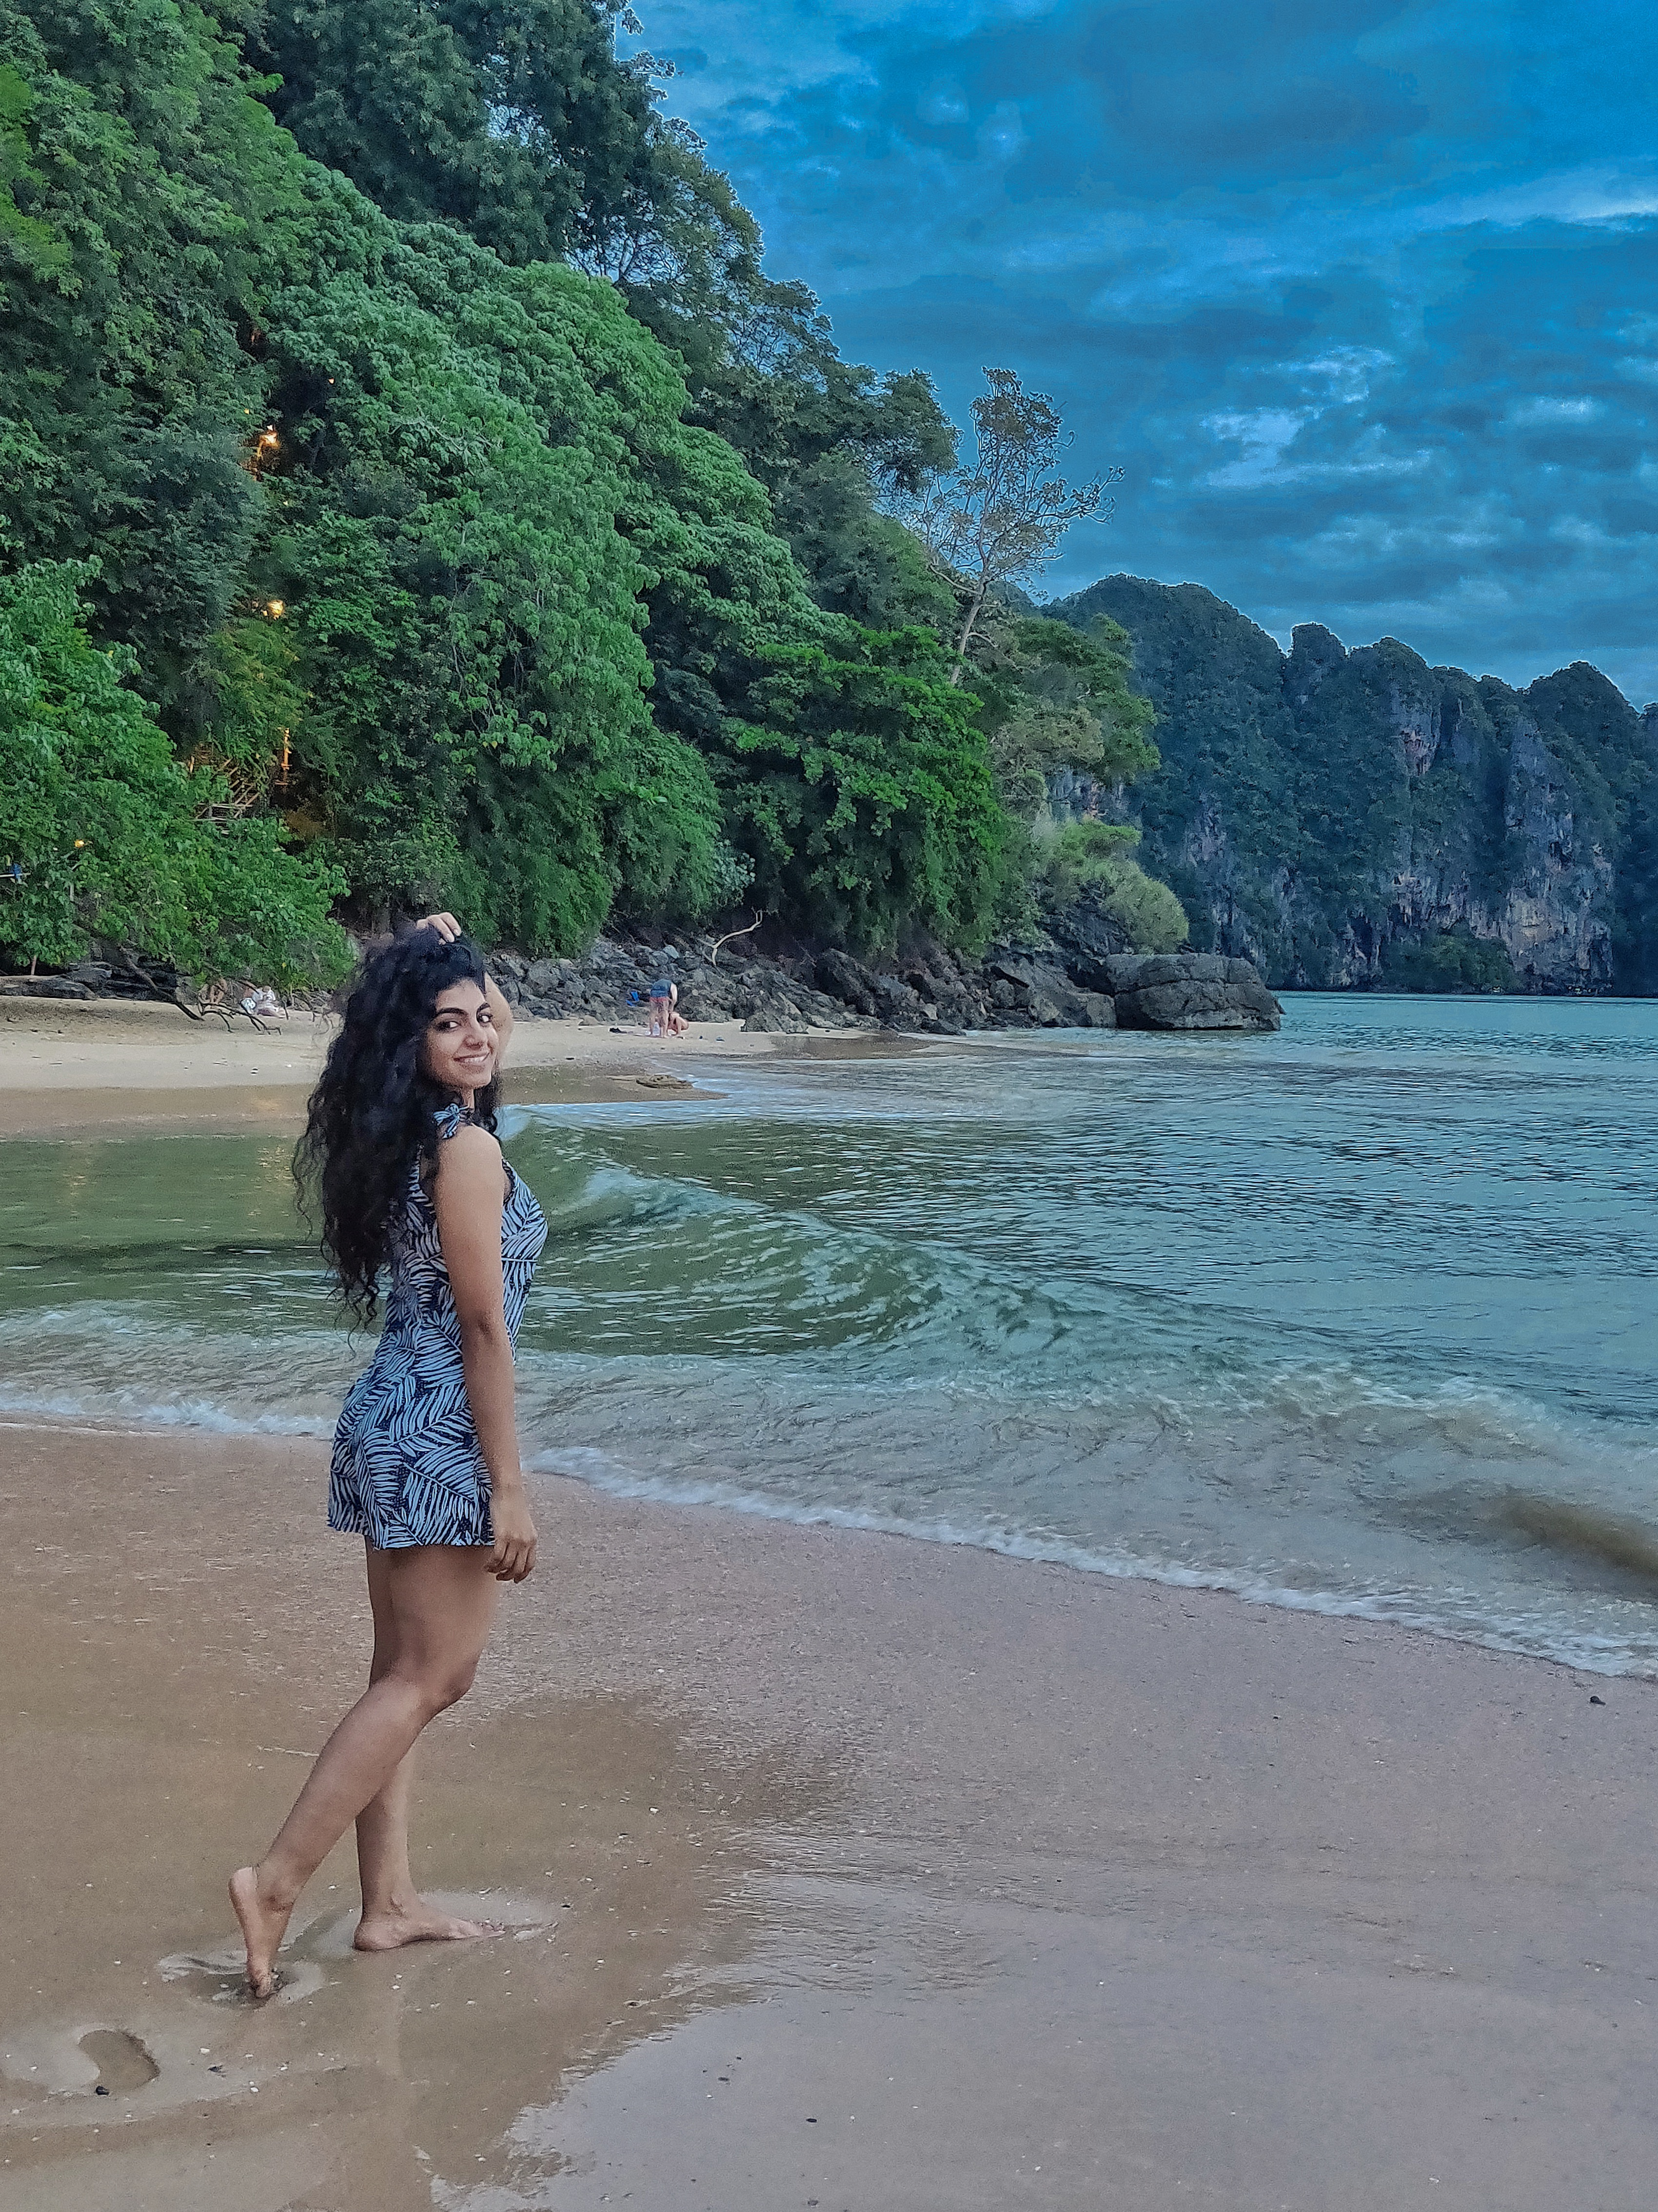 Top places to see in Thailand